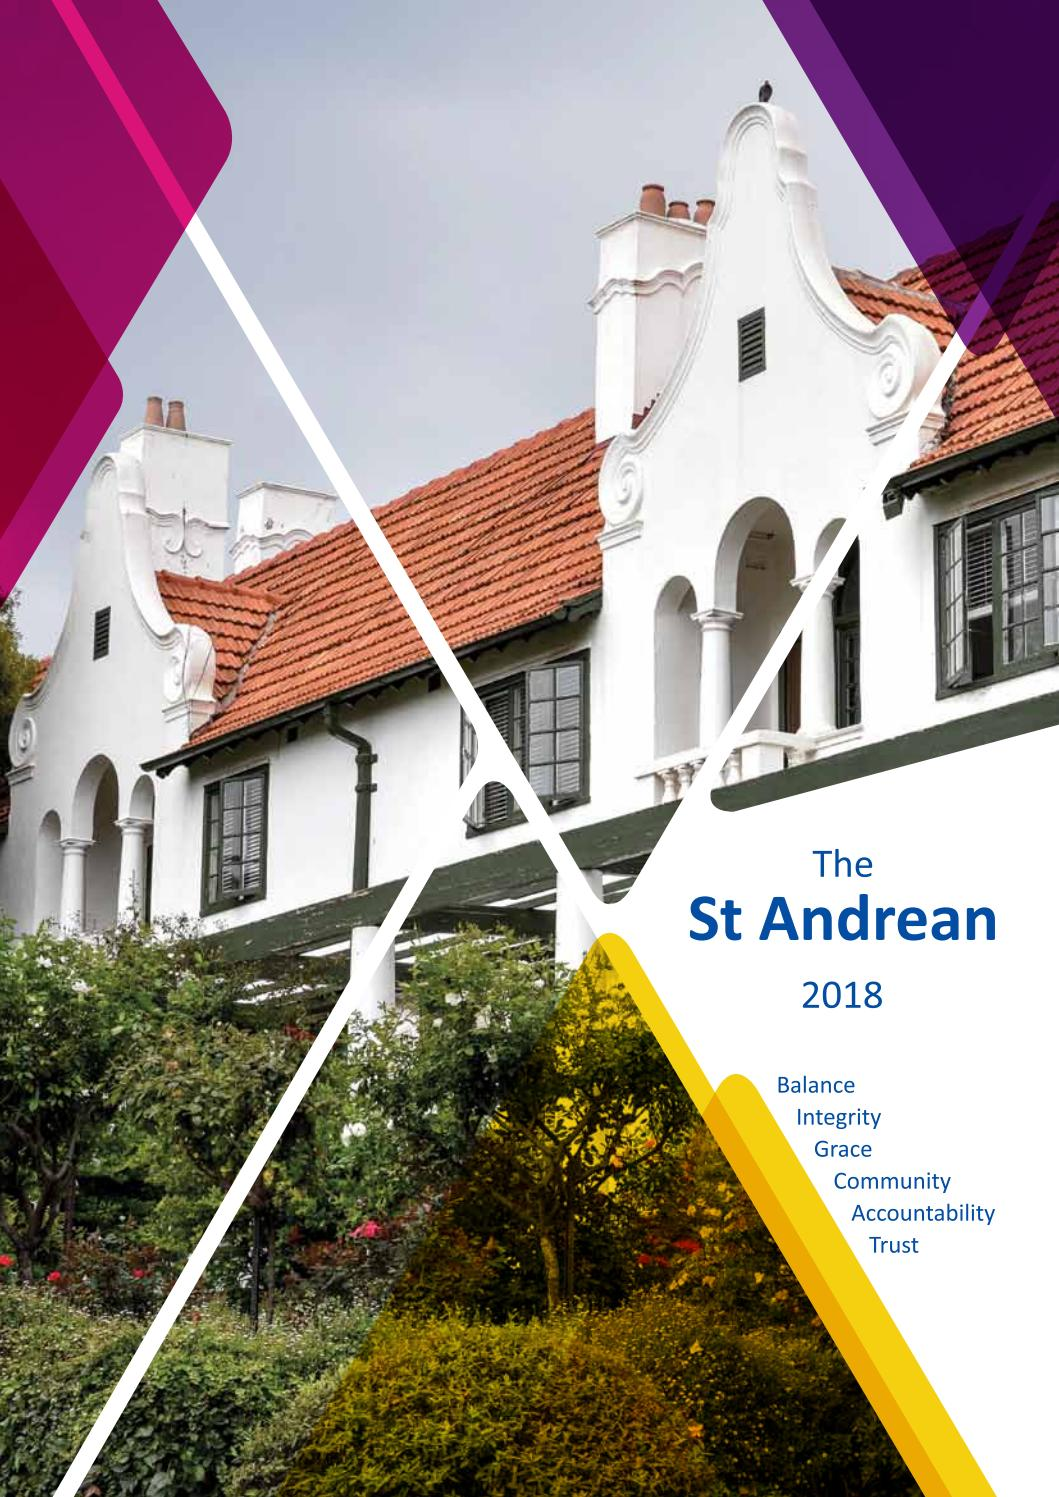 The St Andrean 2018